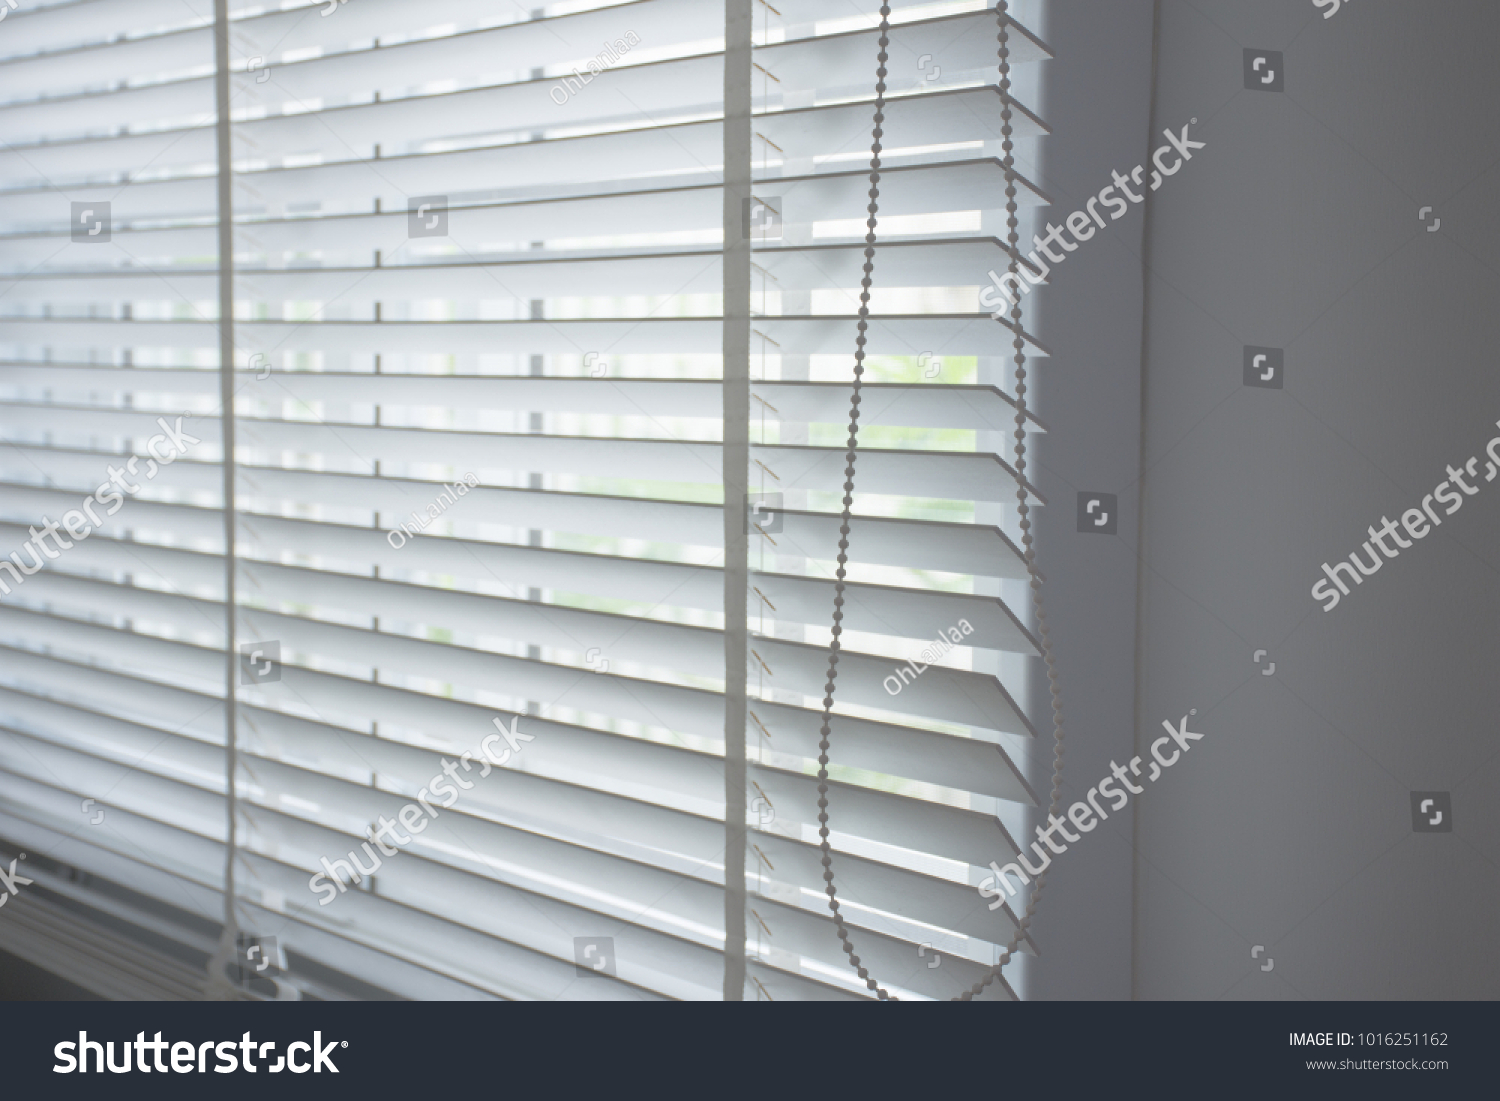 White Curtain Wooden Blinds Window Home Stock Photo Edit Now 1016251162